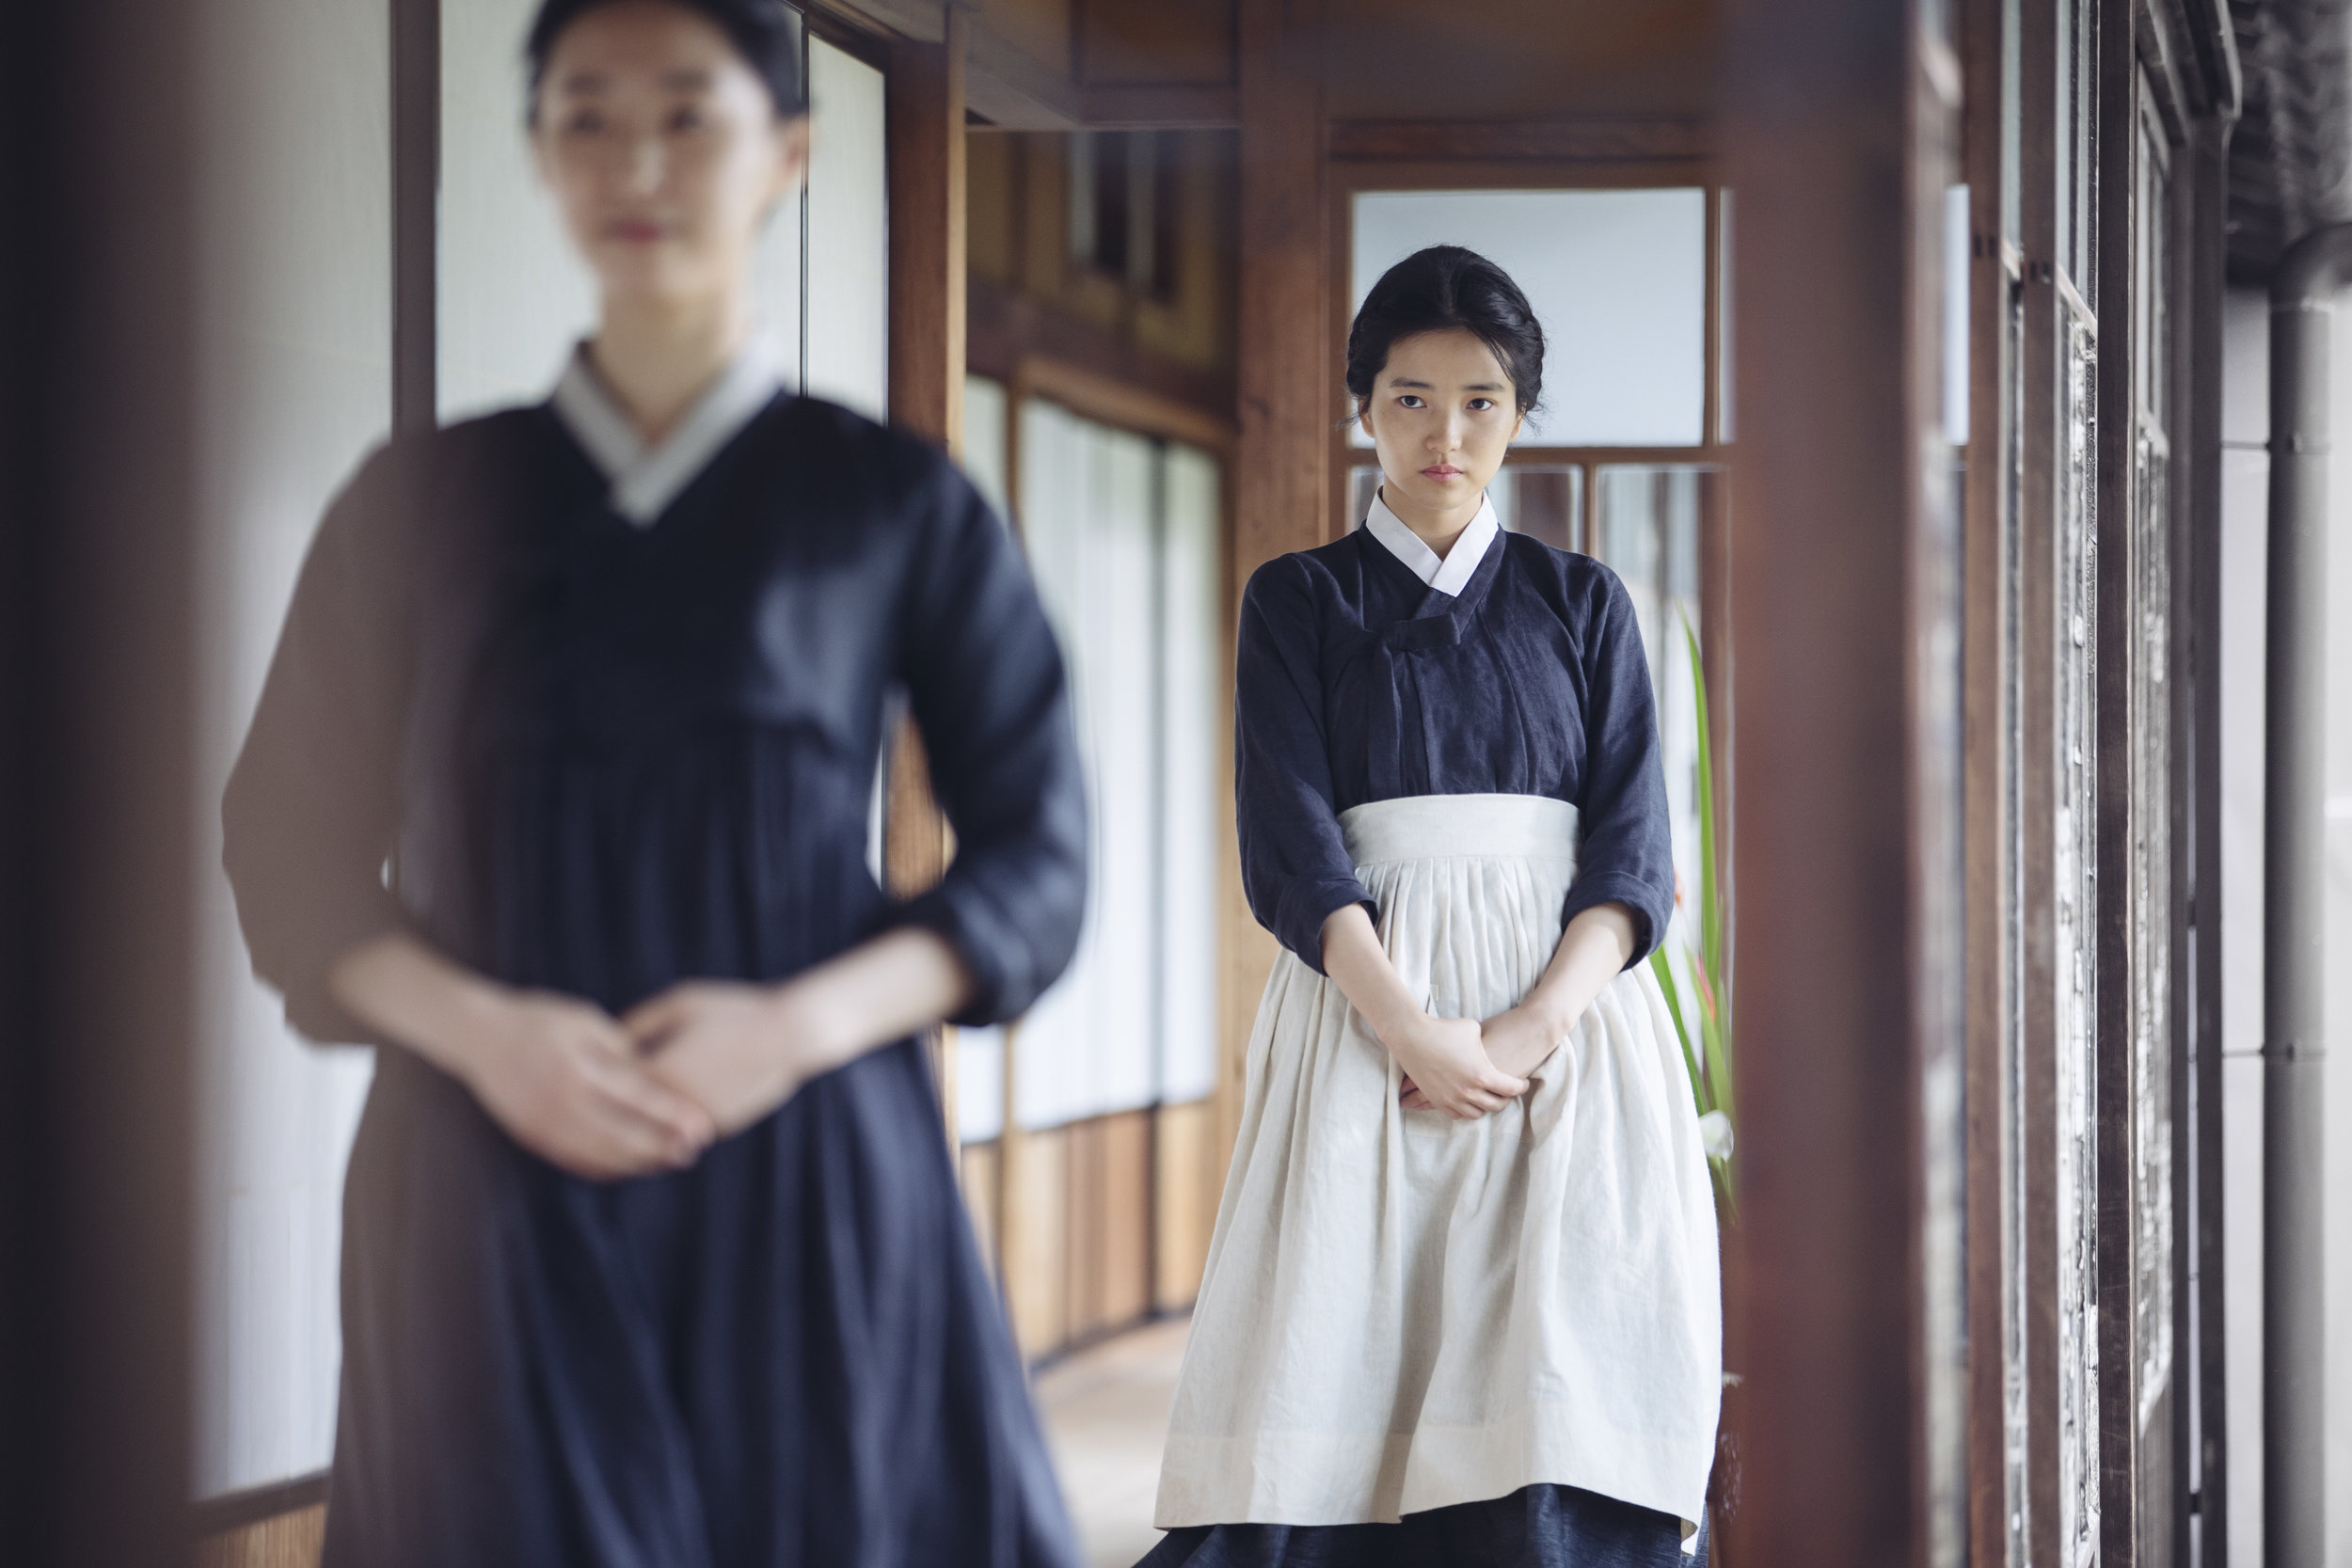 The Handmaiden (Courtesy of TIFF)